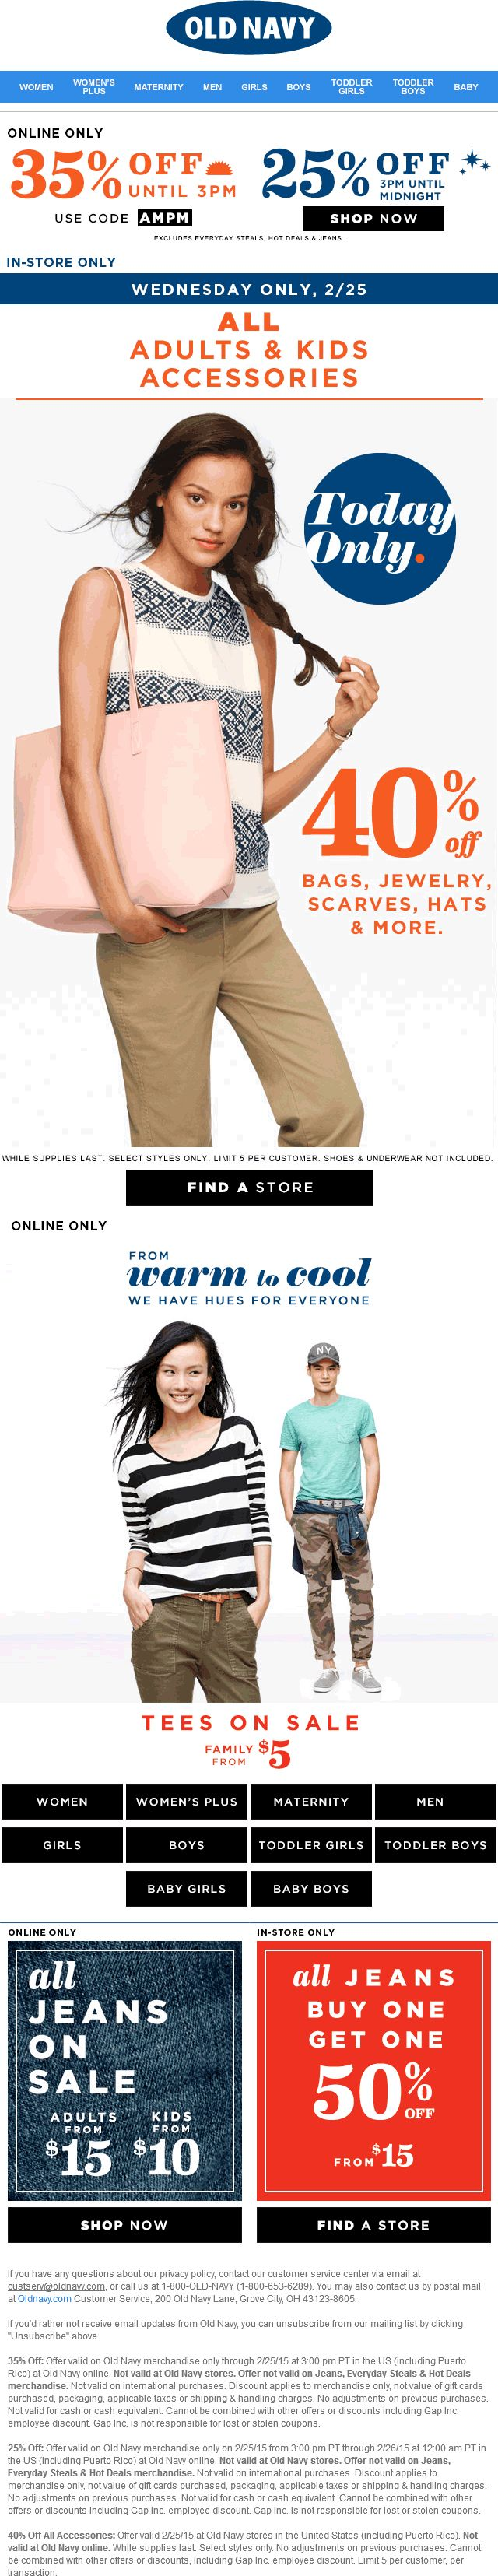 Pinned February 25th: 40% off accessories today at #OldNavy or 35% off online via promo code AMPM #coupon via The #Coupons App